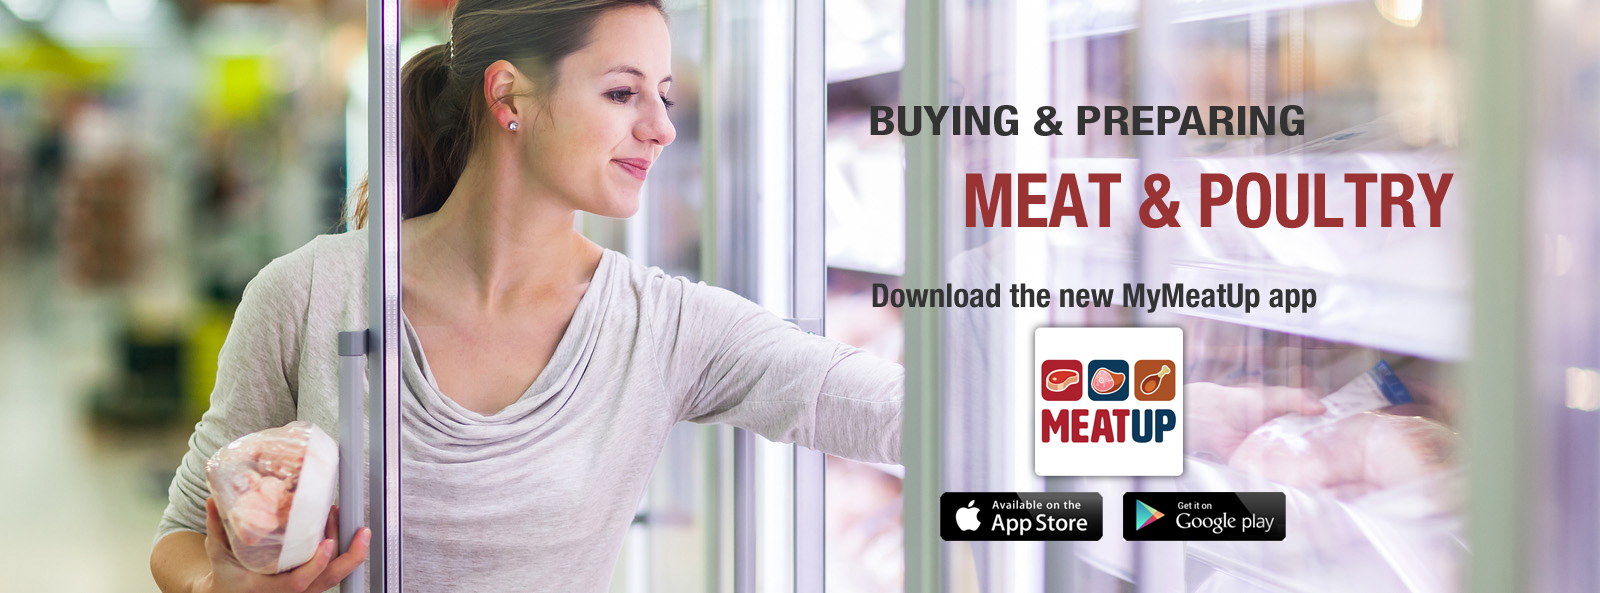 buying and preparing meat and poultry